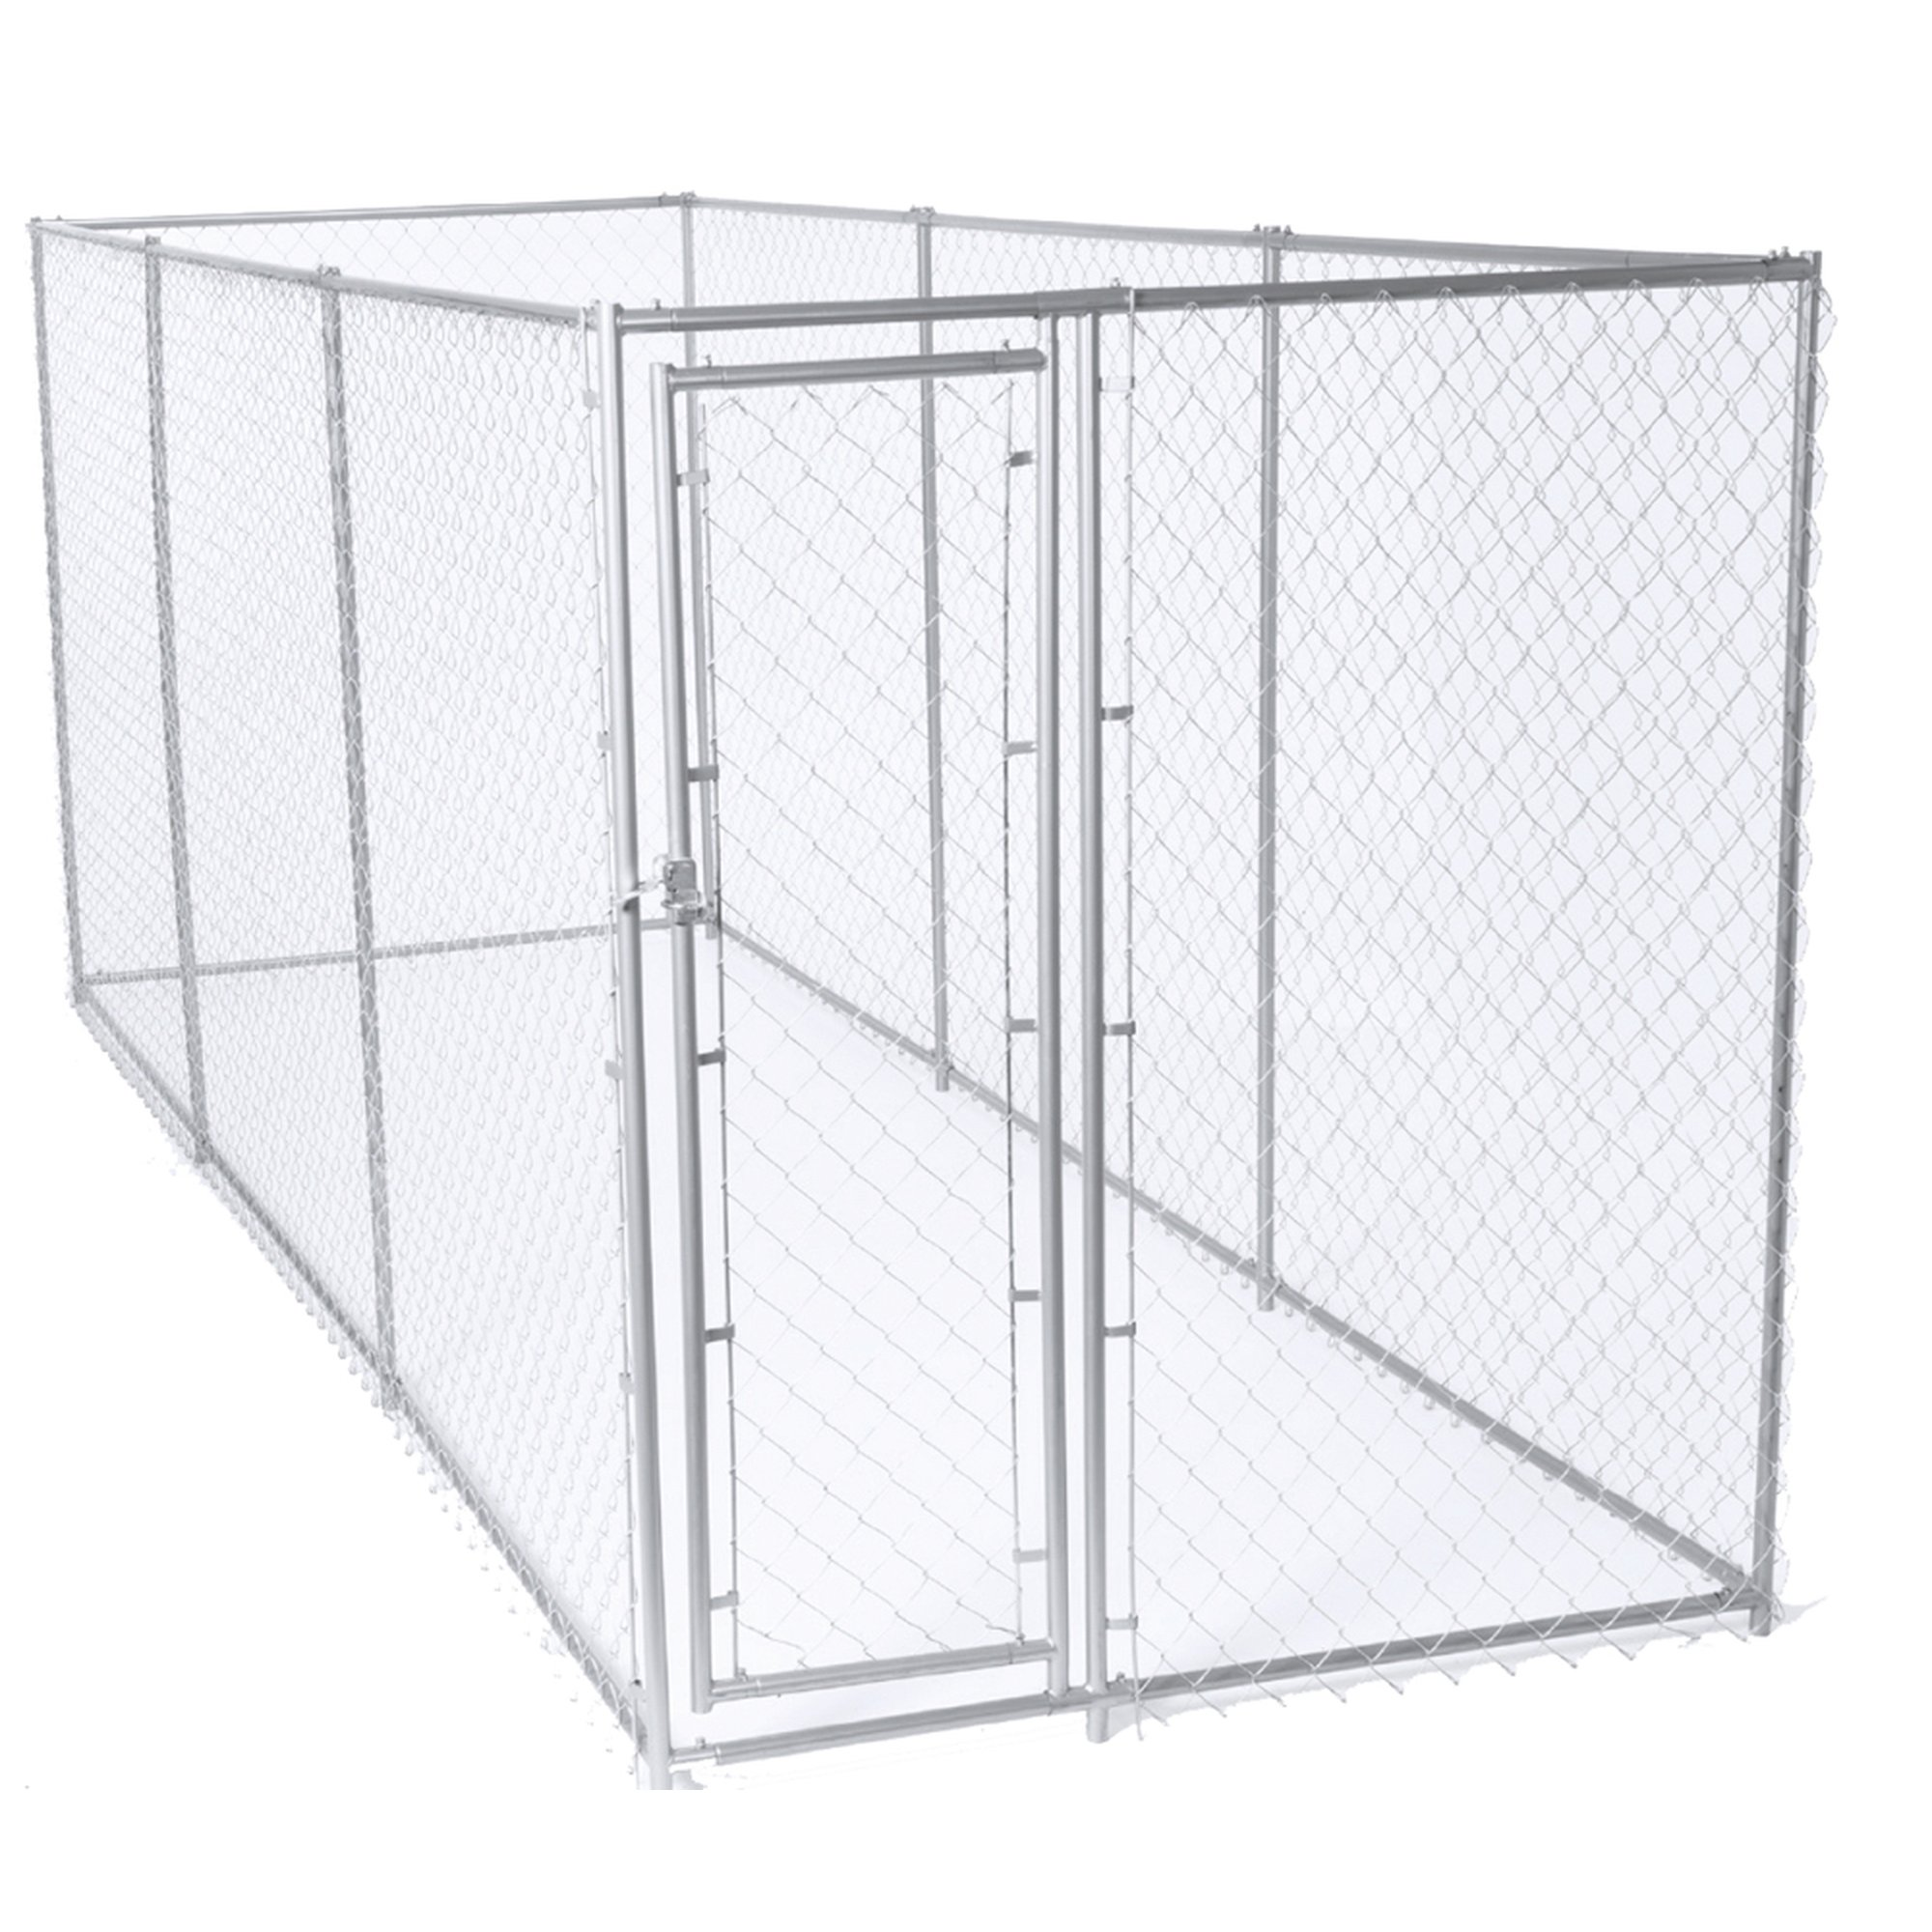 Unique Petco Wire Crate Composition - Schematic diagram and wiring ...